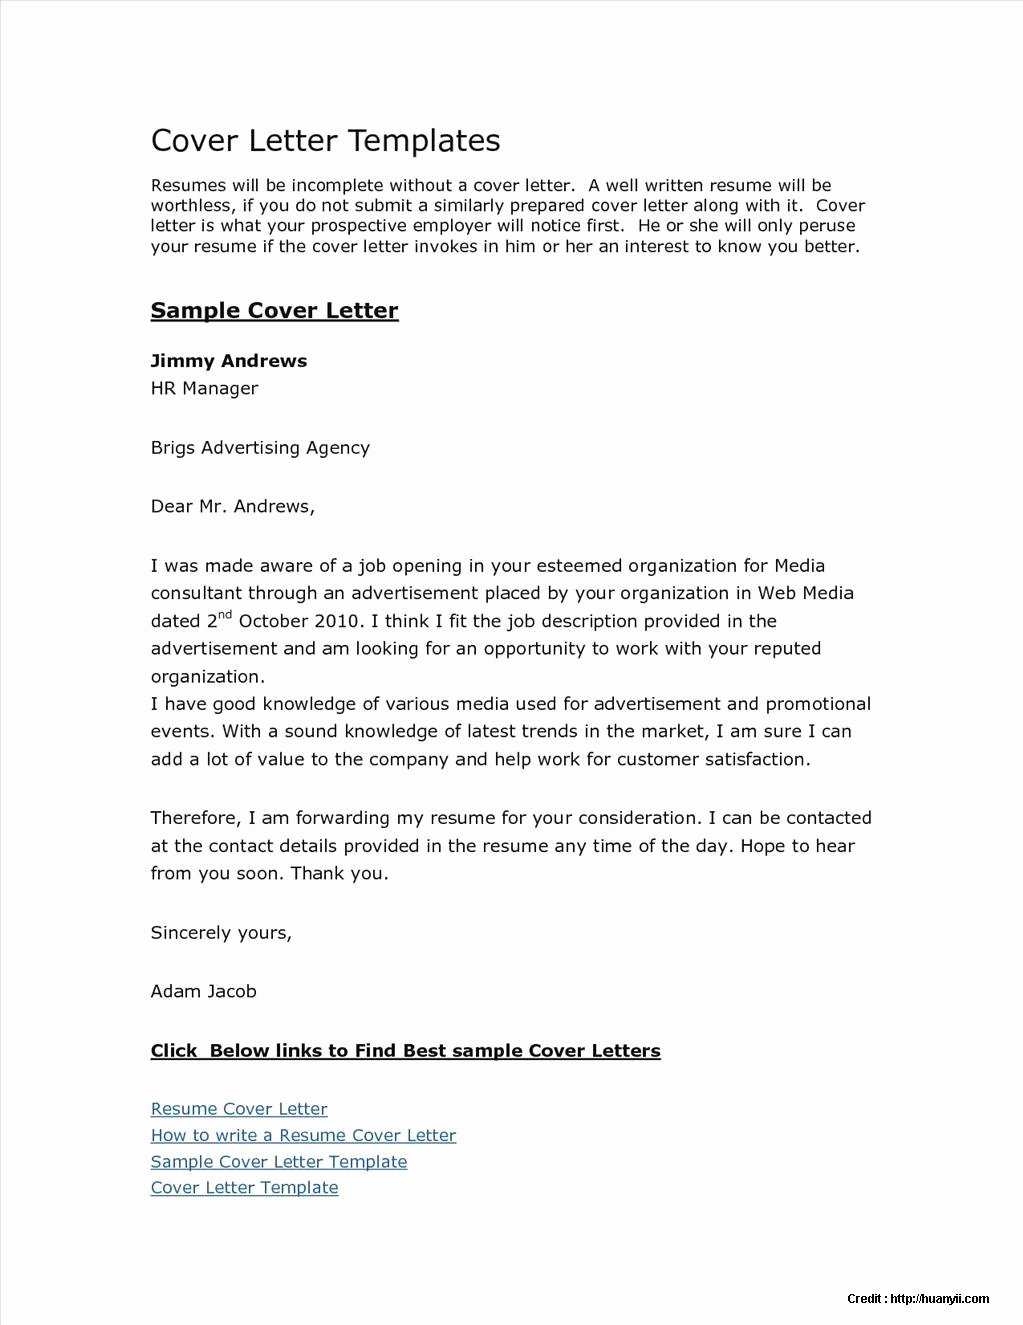 Free Cover Letter Templates Microsoft Download Cover